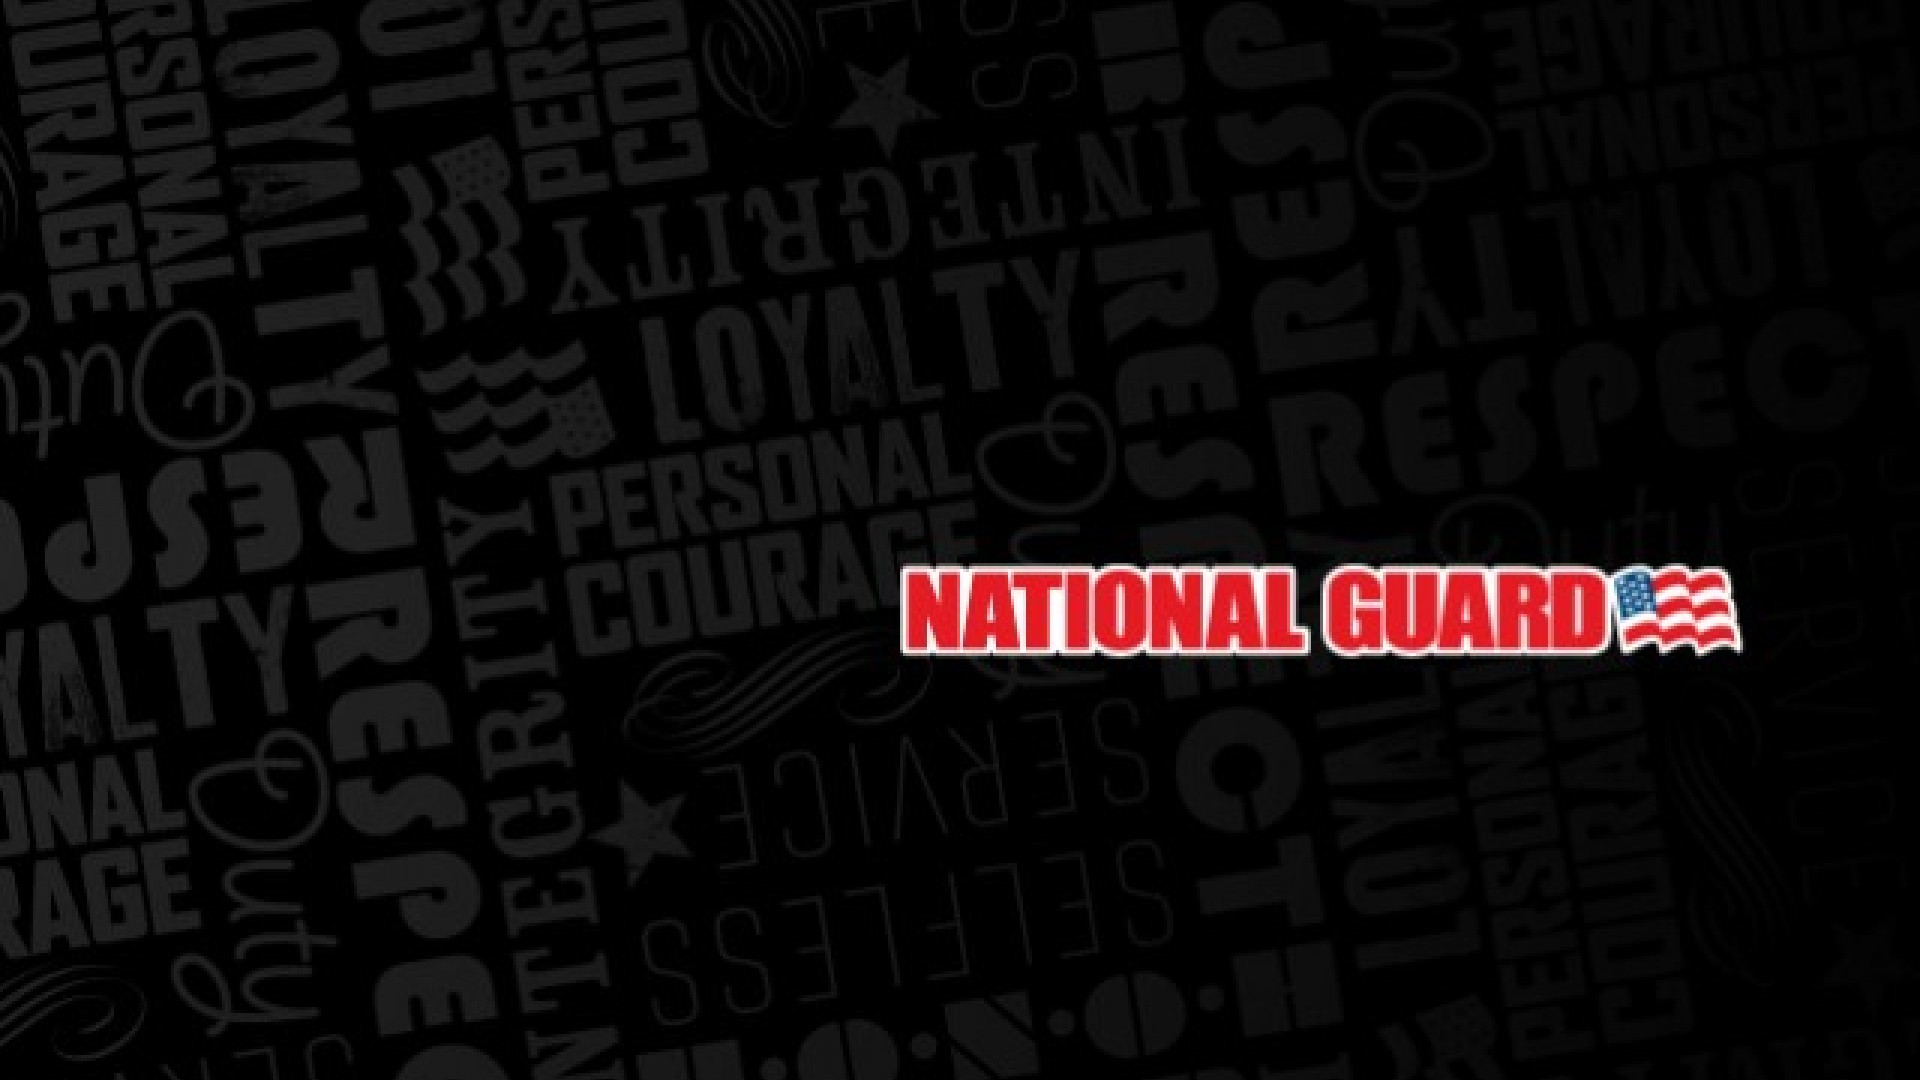 National Guard Wallpaper